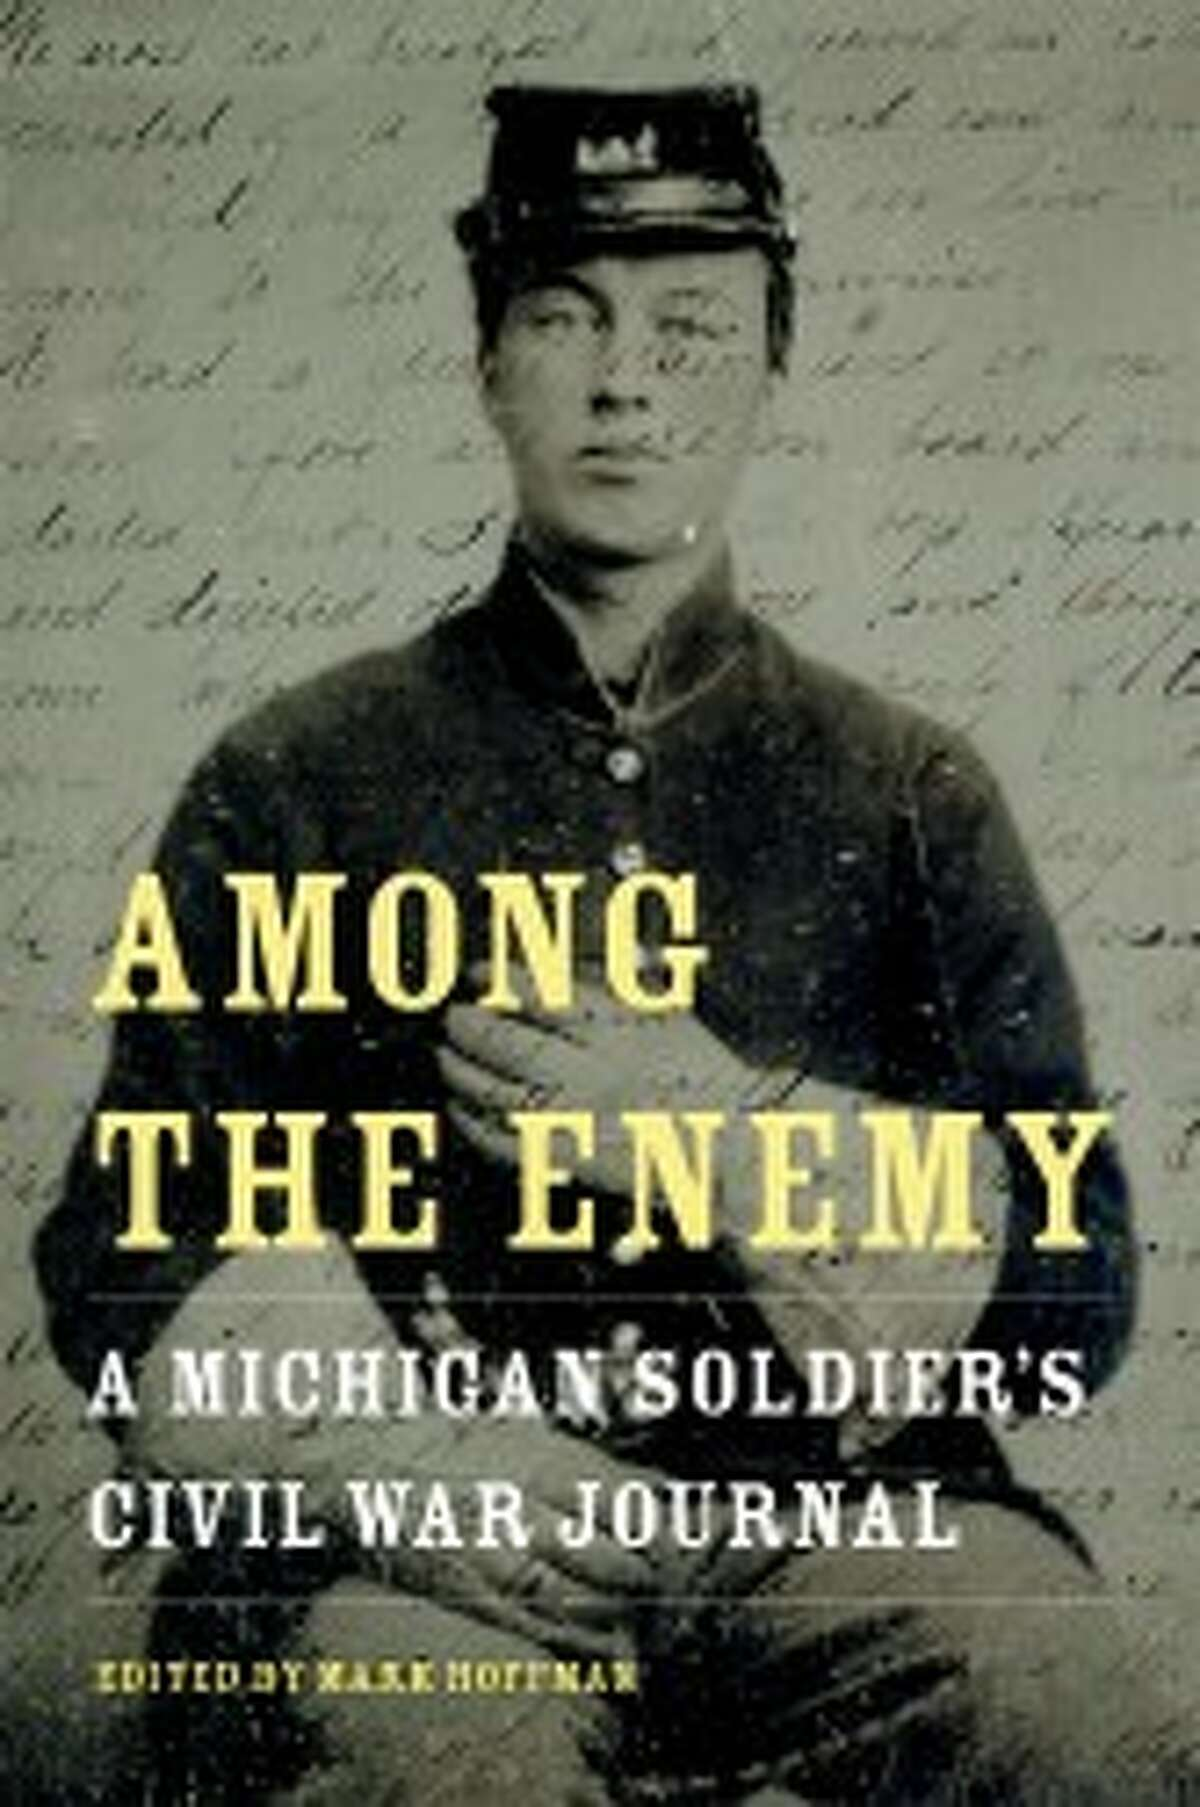 William Horton Kimball, who lived in Ludington after the Civil War, kept a journal during his time in the war that is the subject of this book edited by Mark Hoffman.